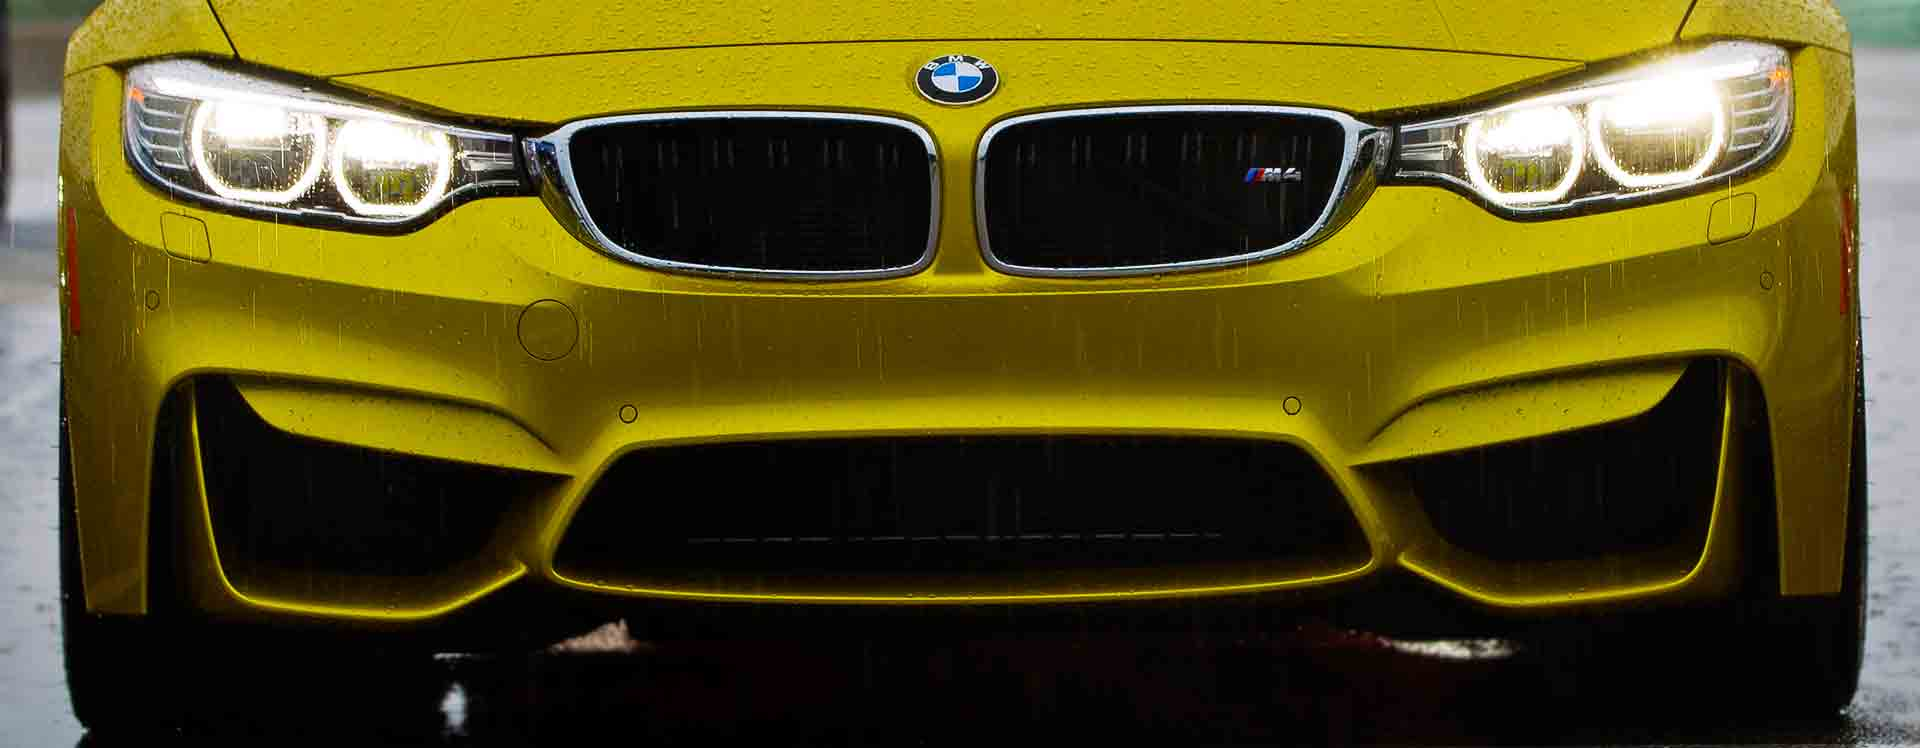 hight resolution of bmw car wash guide wash your bmw in 5 easy steps